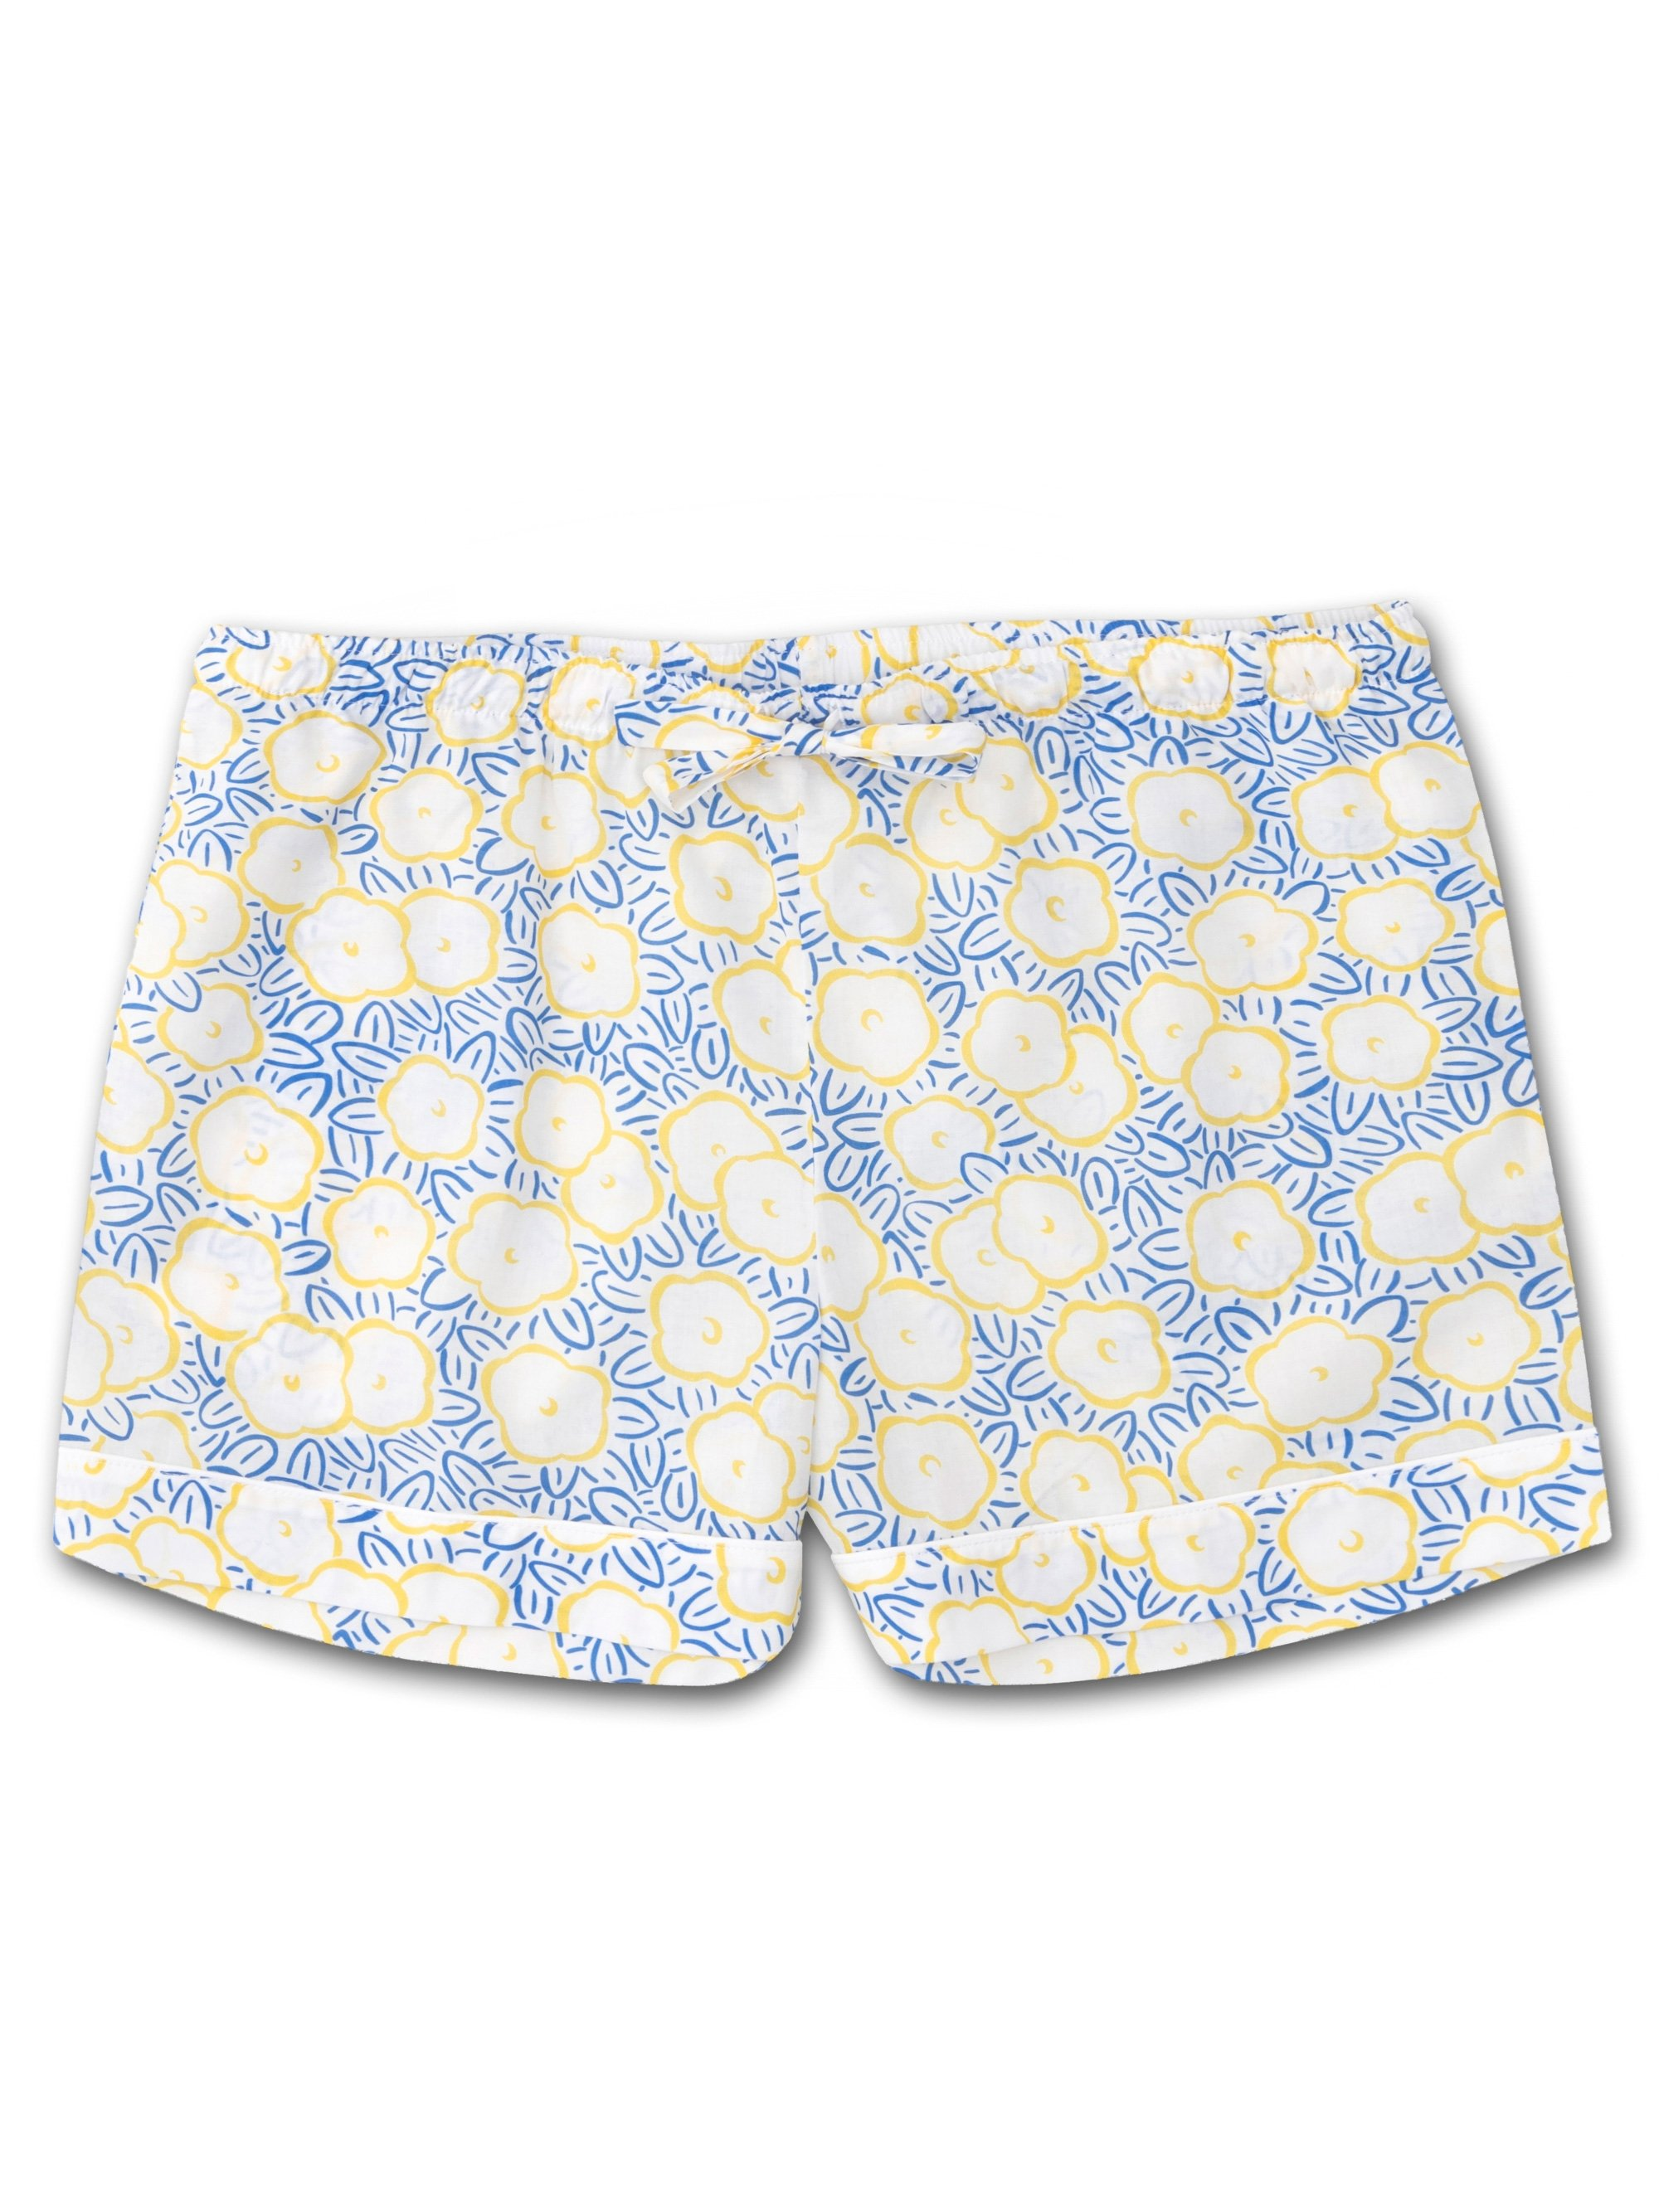 Women's Lounge Shorts Ledbury 33 Cotton Batiste White